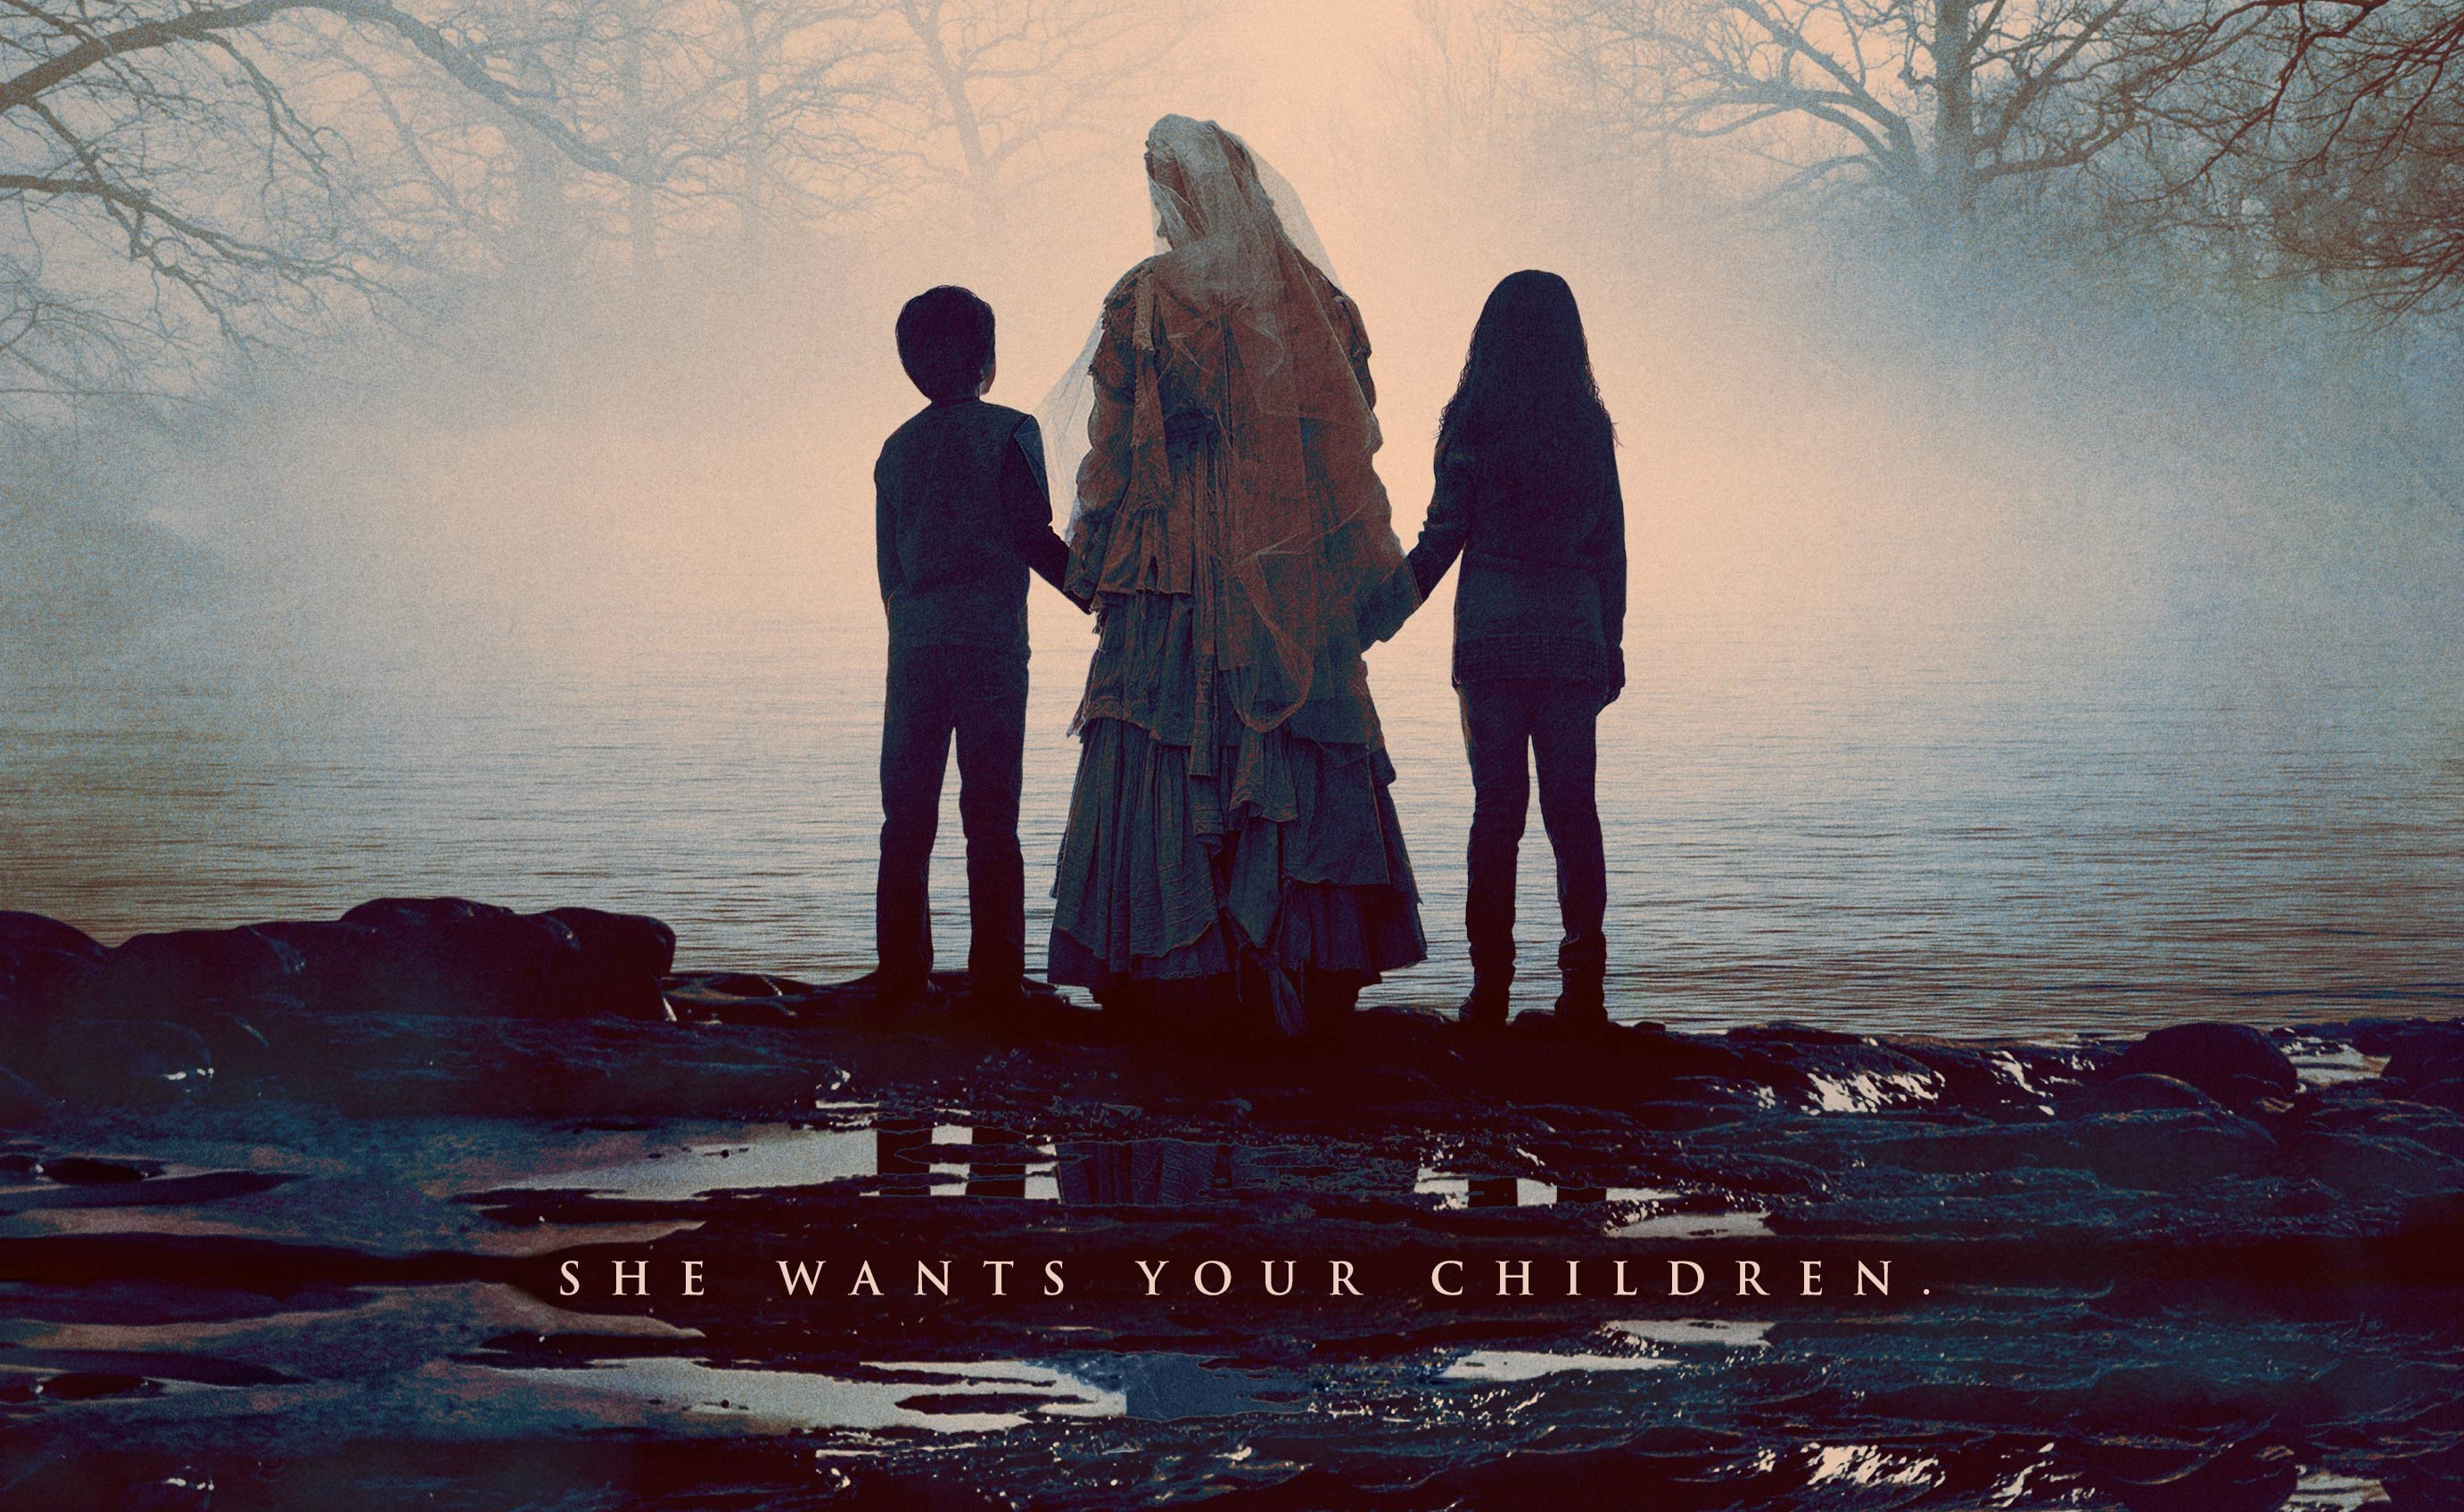 [News] Official Trailer Released for THE CURSE OF LA LLORONA